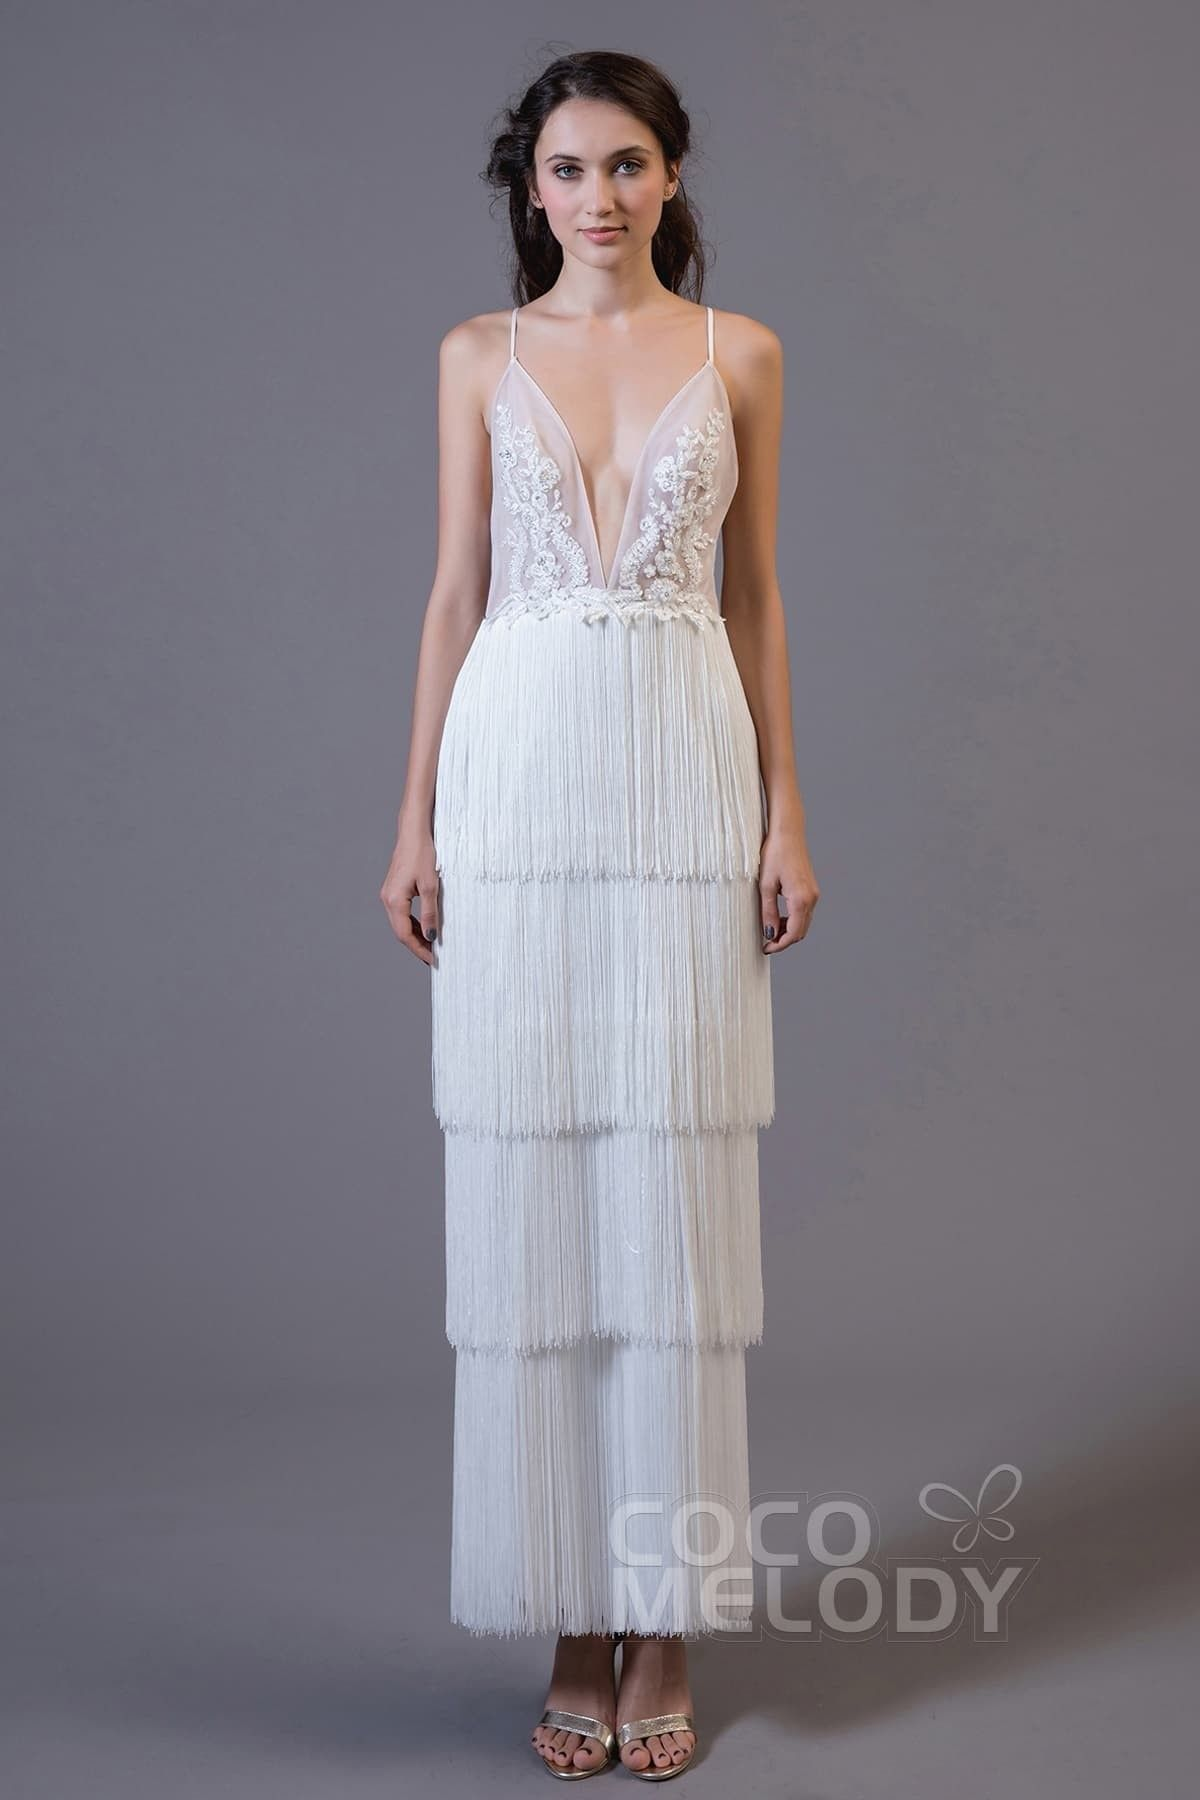 3b15e0a25d80 Impressive Sheath-Column V-Neck Natural Ankle Length Tulle and Elastic Silk  like Satin Sleeveless Zipper Zipper Wedding Dress with Appliques and Tassel  ...